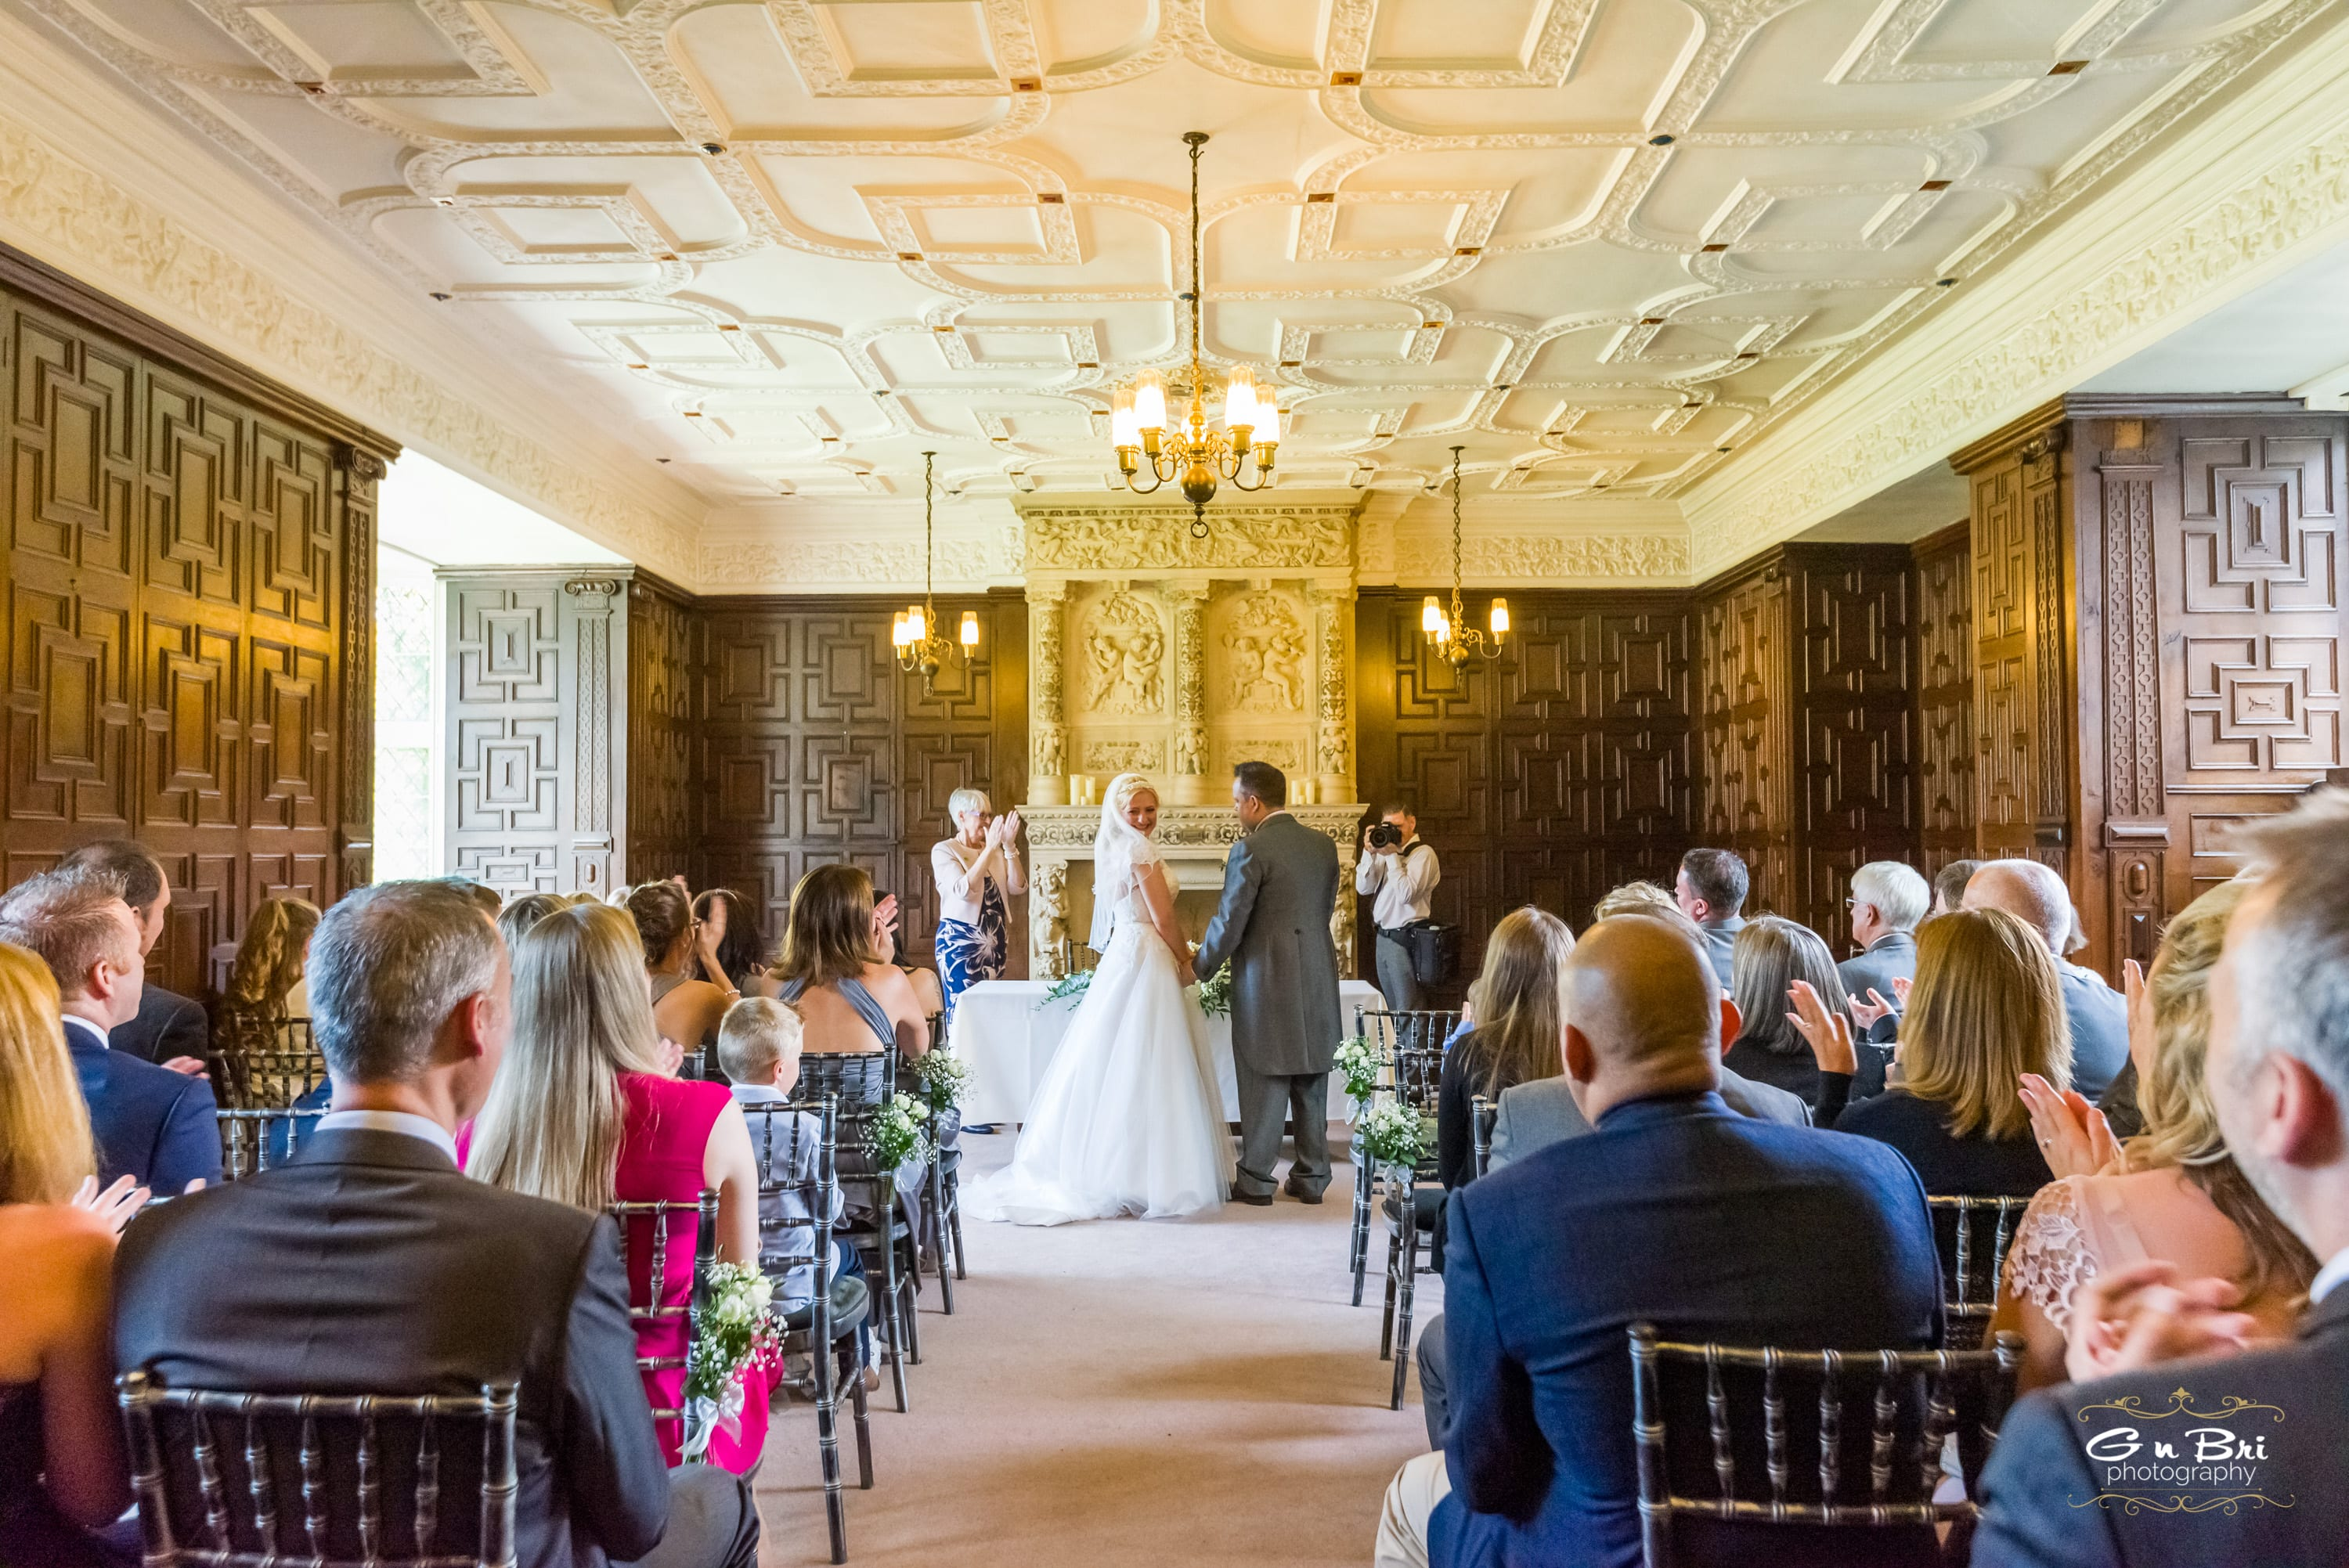 Wedding ceremony in the Library at Rothamsted Manor